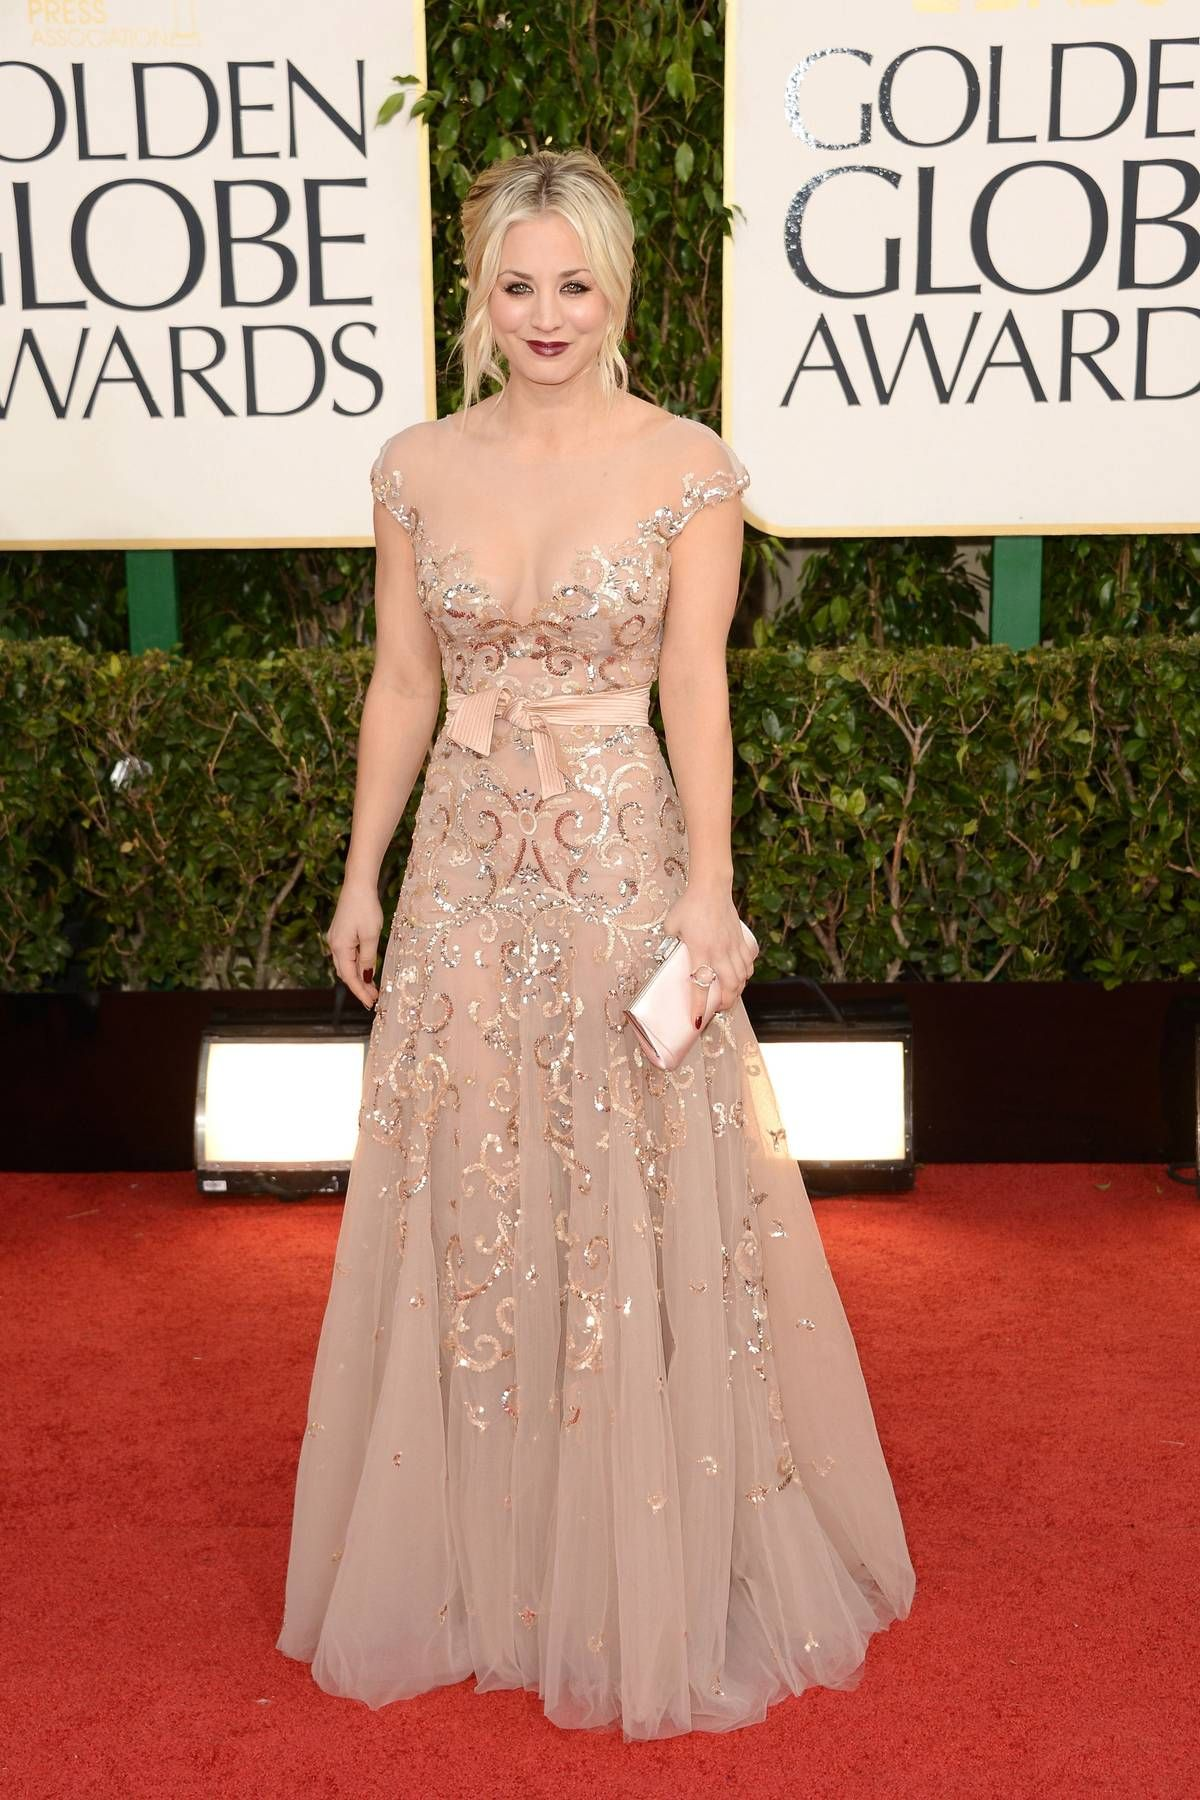 See all the red carpet looks from the golden globes globe